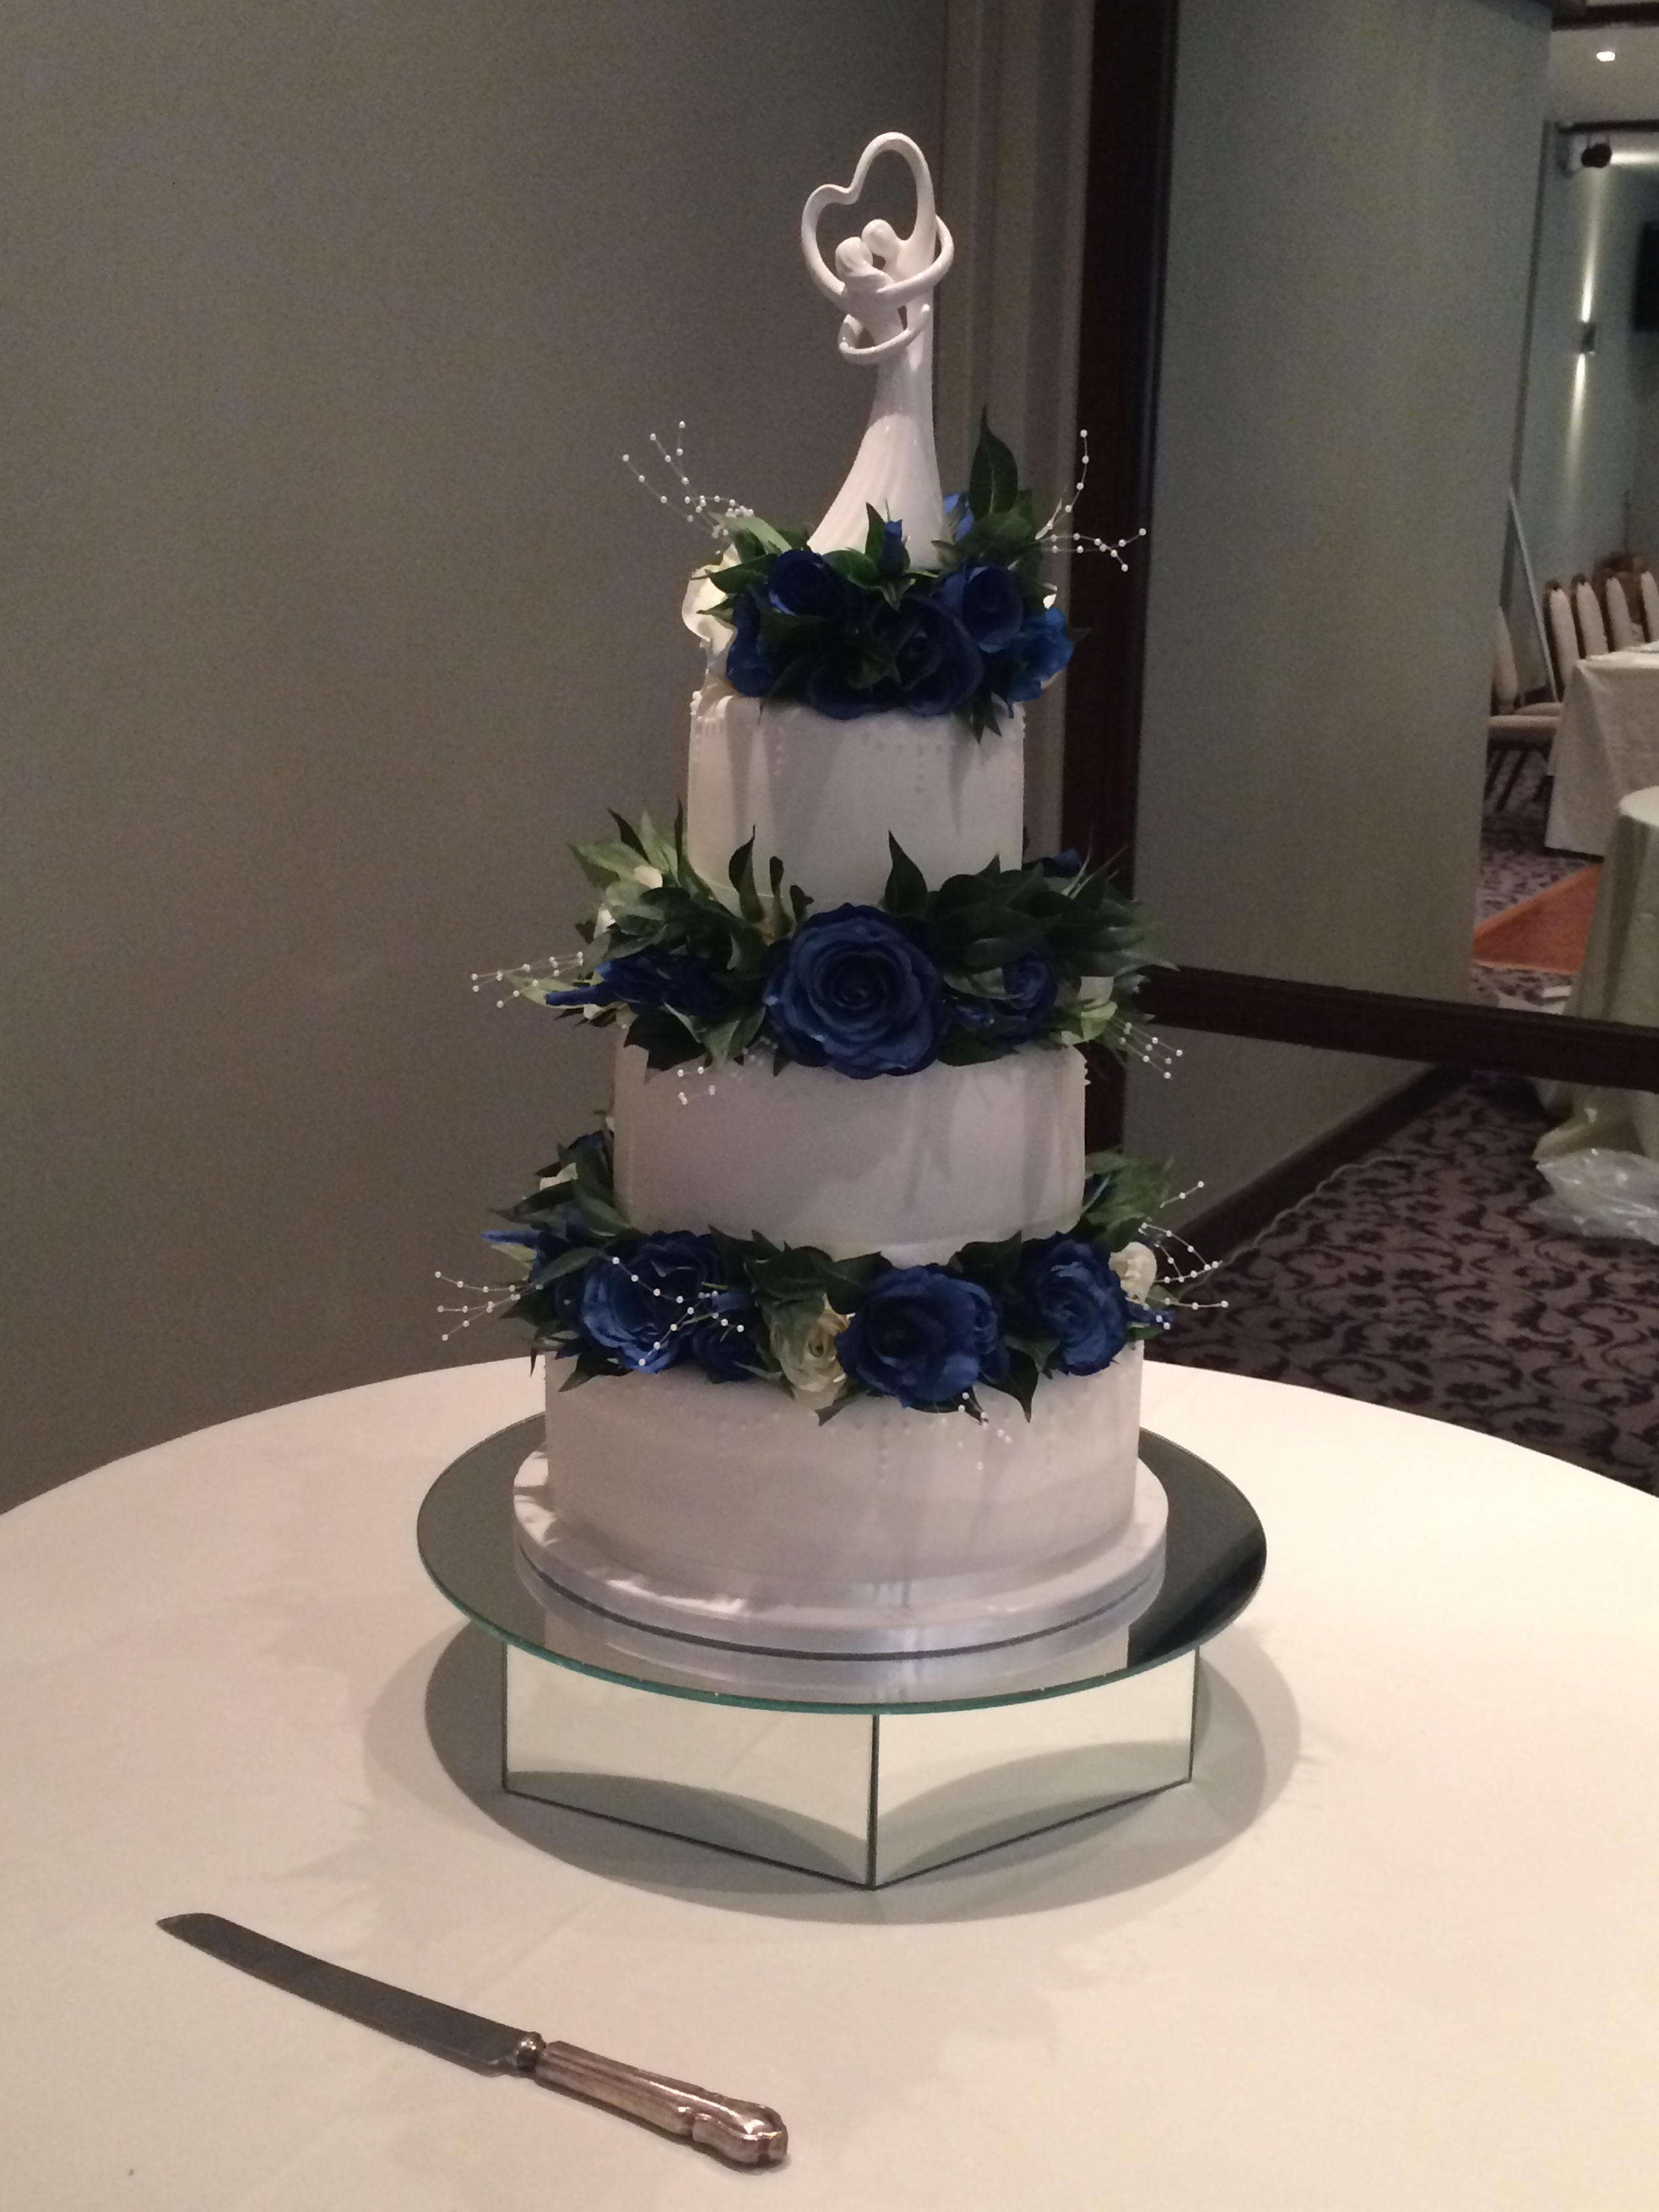 Wedding Cake Flowers - Stacked Arrangement With 3 Layers Of Dark Blue & Ivory Roses With Bayleaves